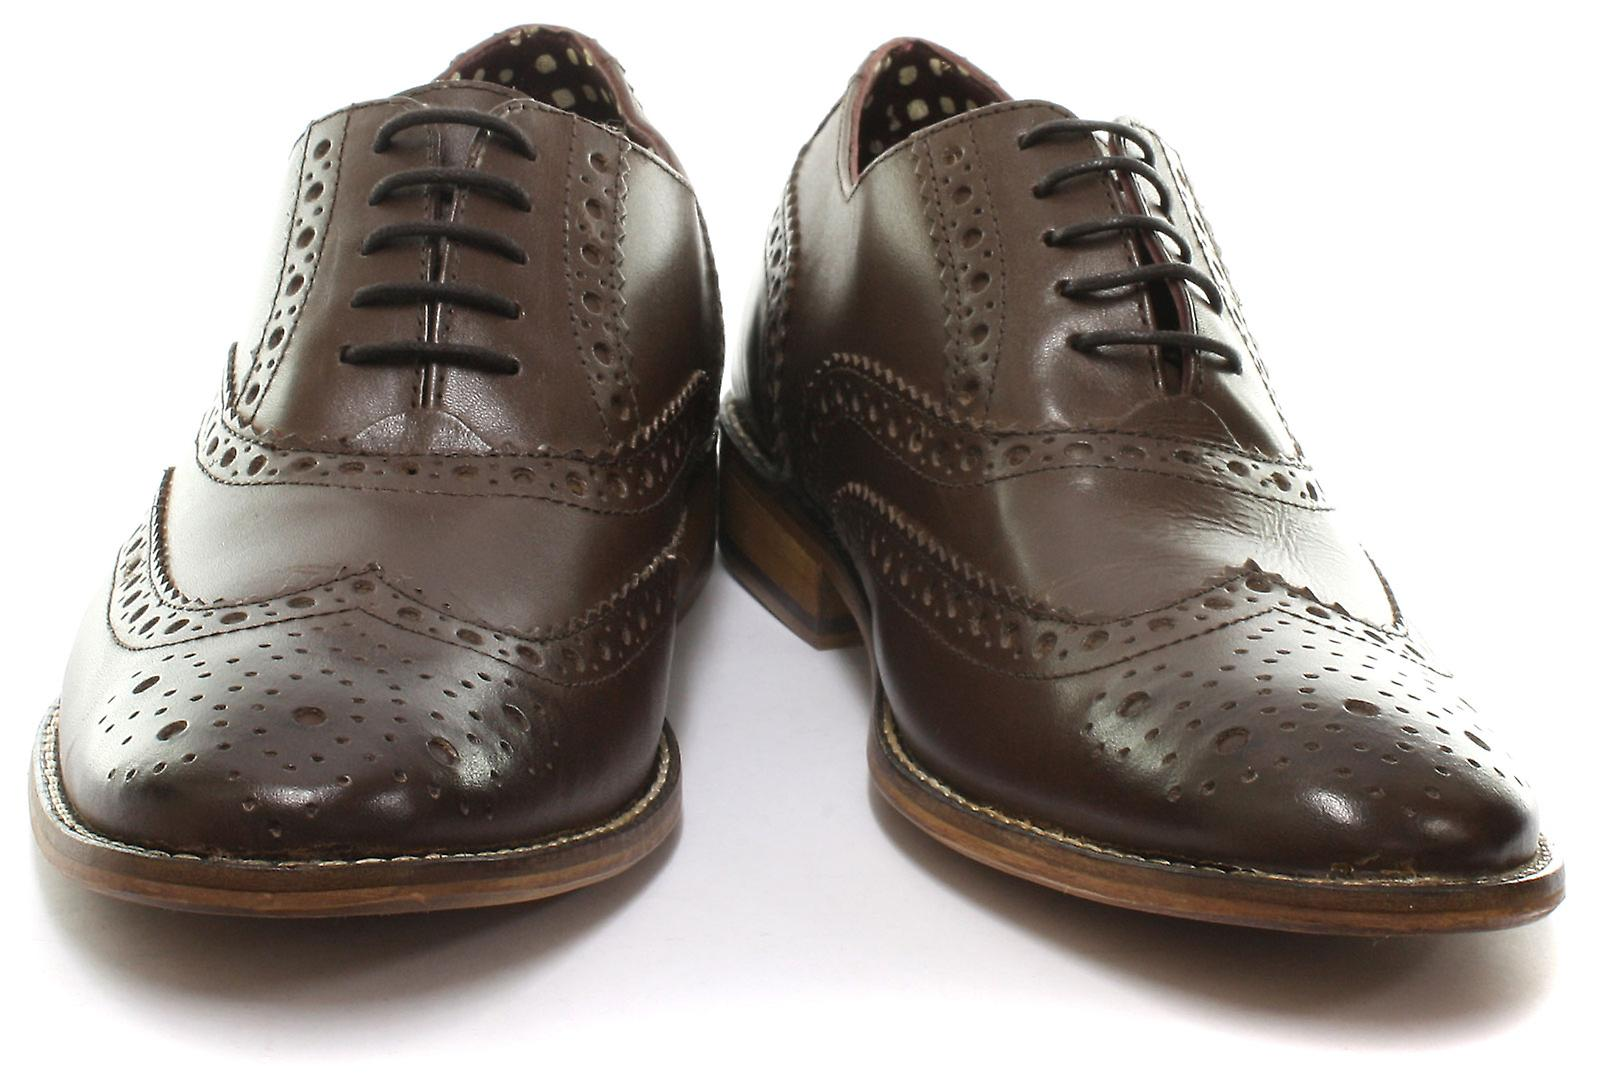 a579a6e891c35 London Brogues Gatsby Brown Leather Mens Brogue Shoes UK